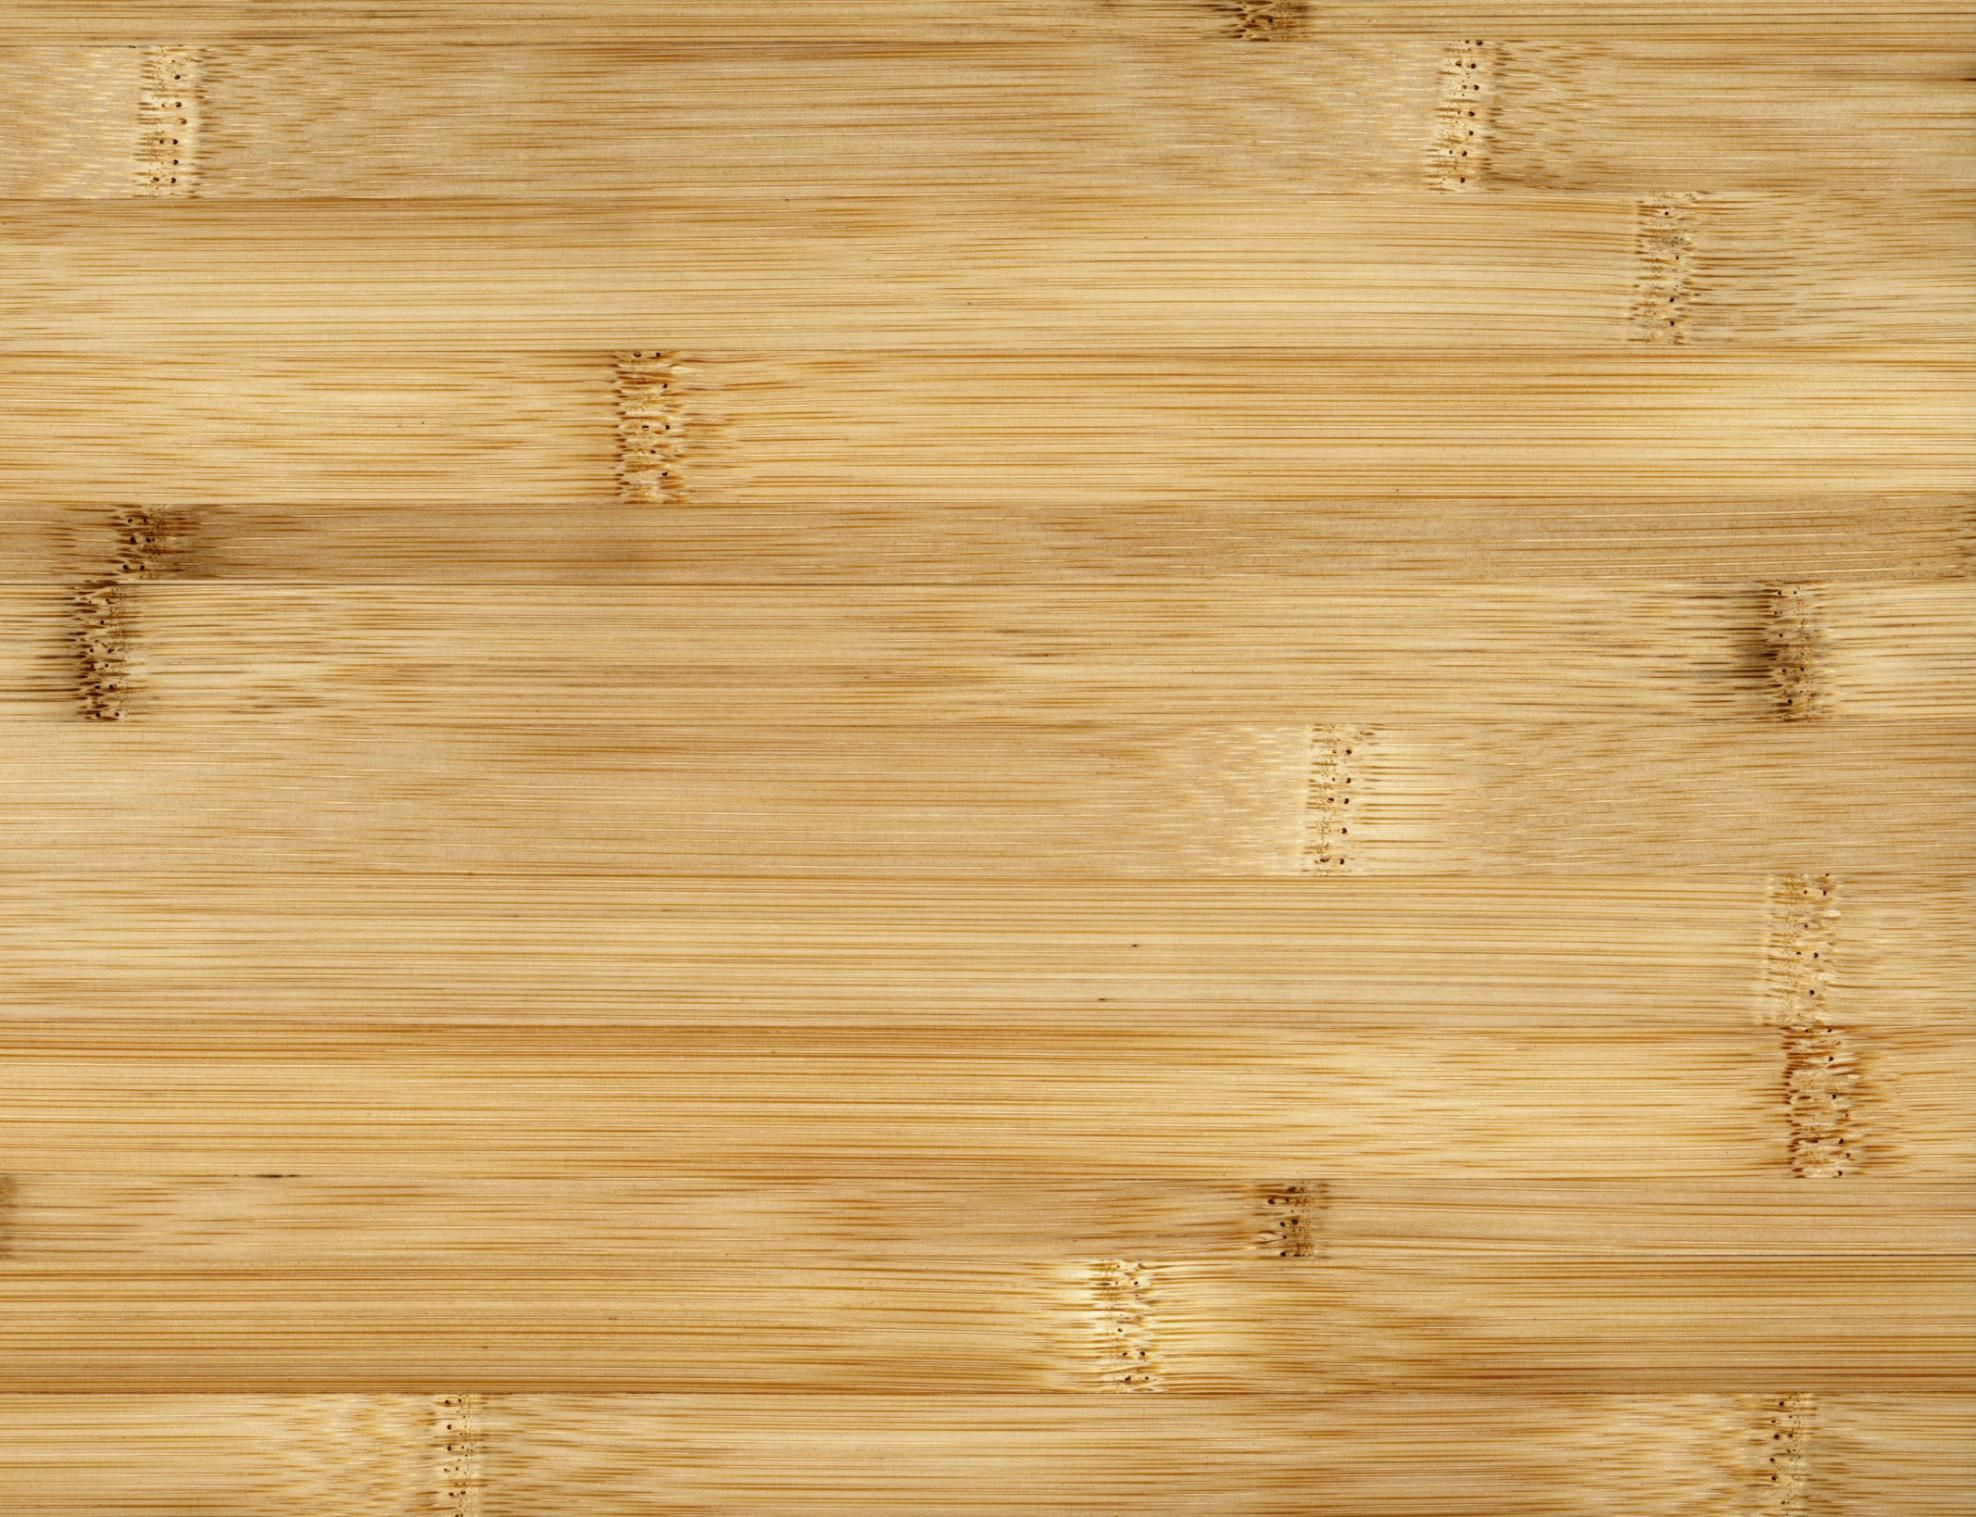 hardwood floor refinishing riverside ca of how to clean bamboo flooring for 200266305 001 56a2fd815f9b58b7d0d000cd